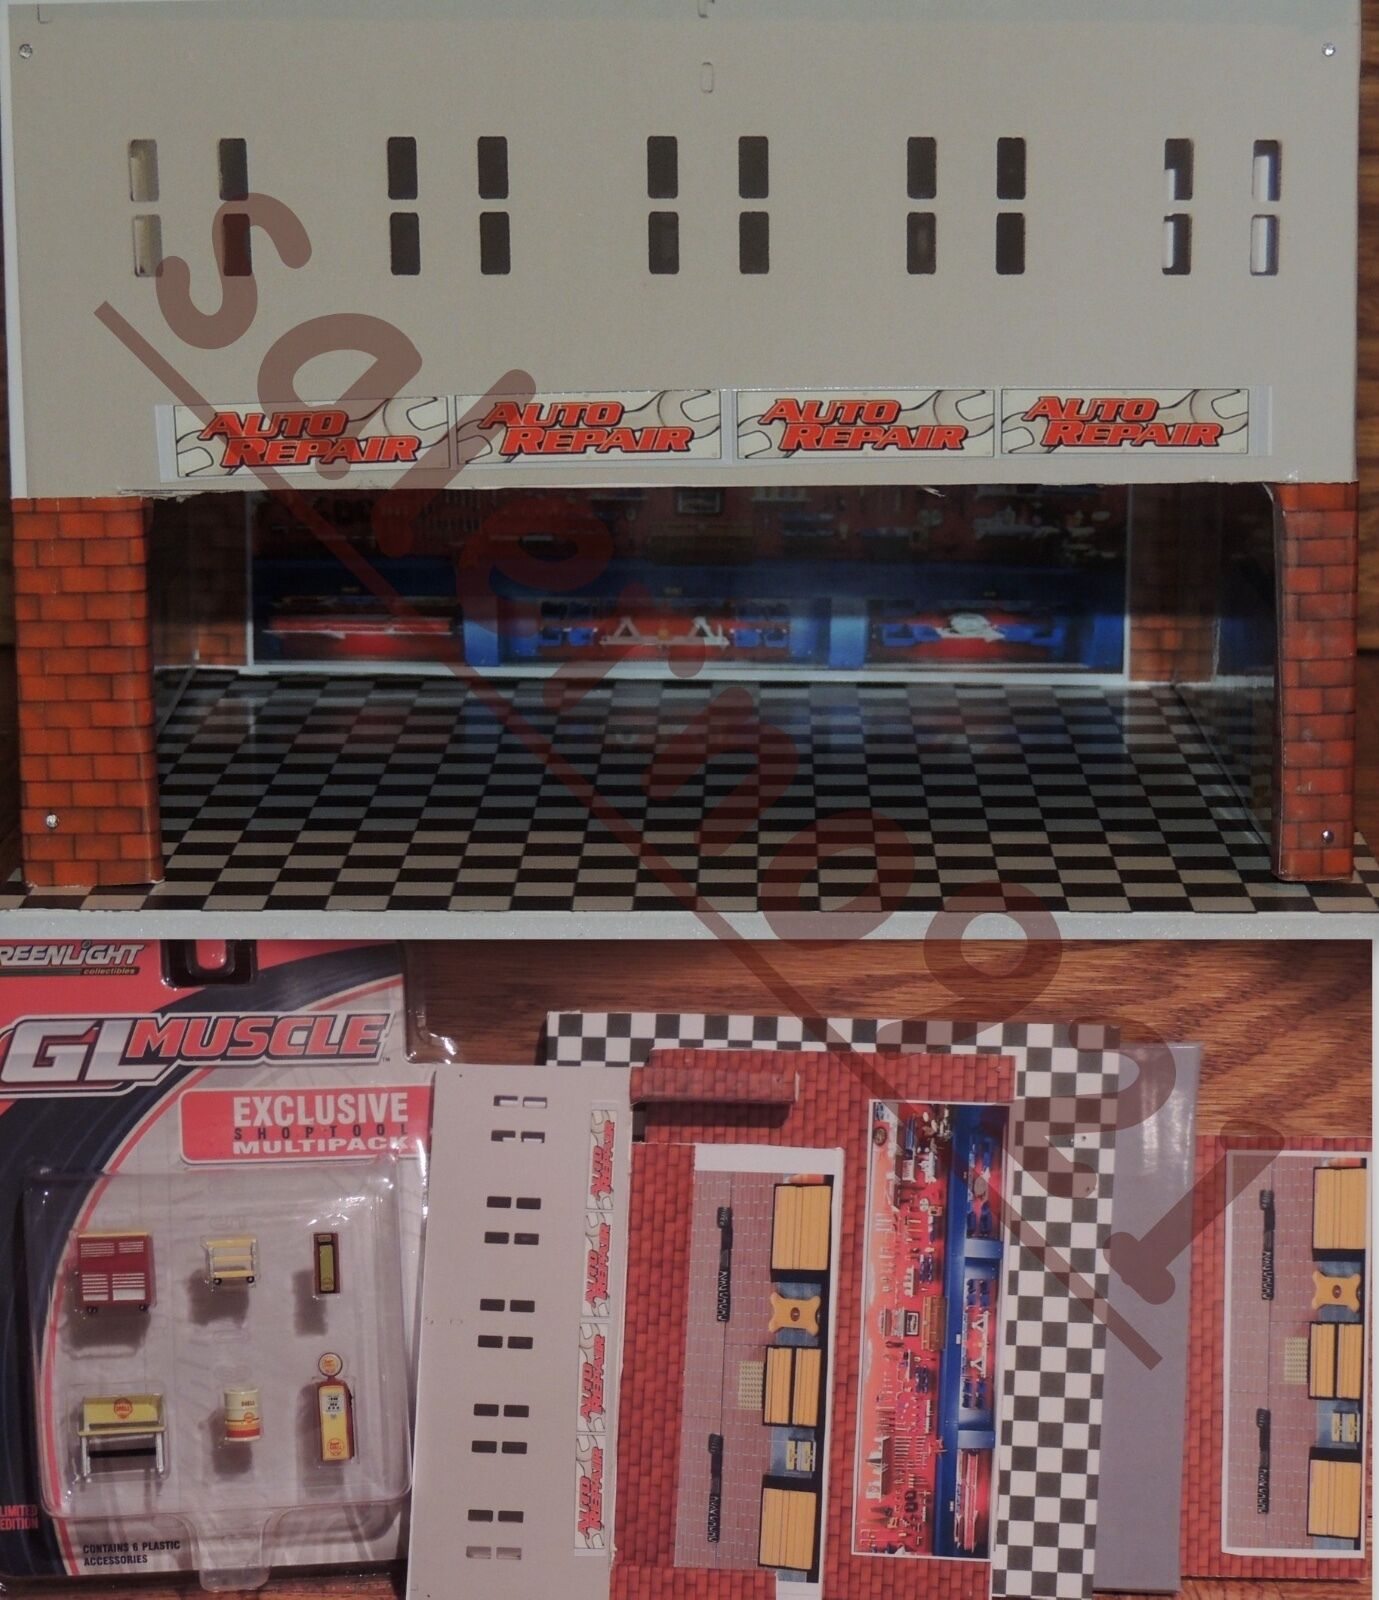 TWO FLOORS BUILDING KIT WITH SHELL STATION GARAGE 1 64 (S) Scale DIORAMA